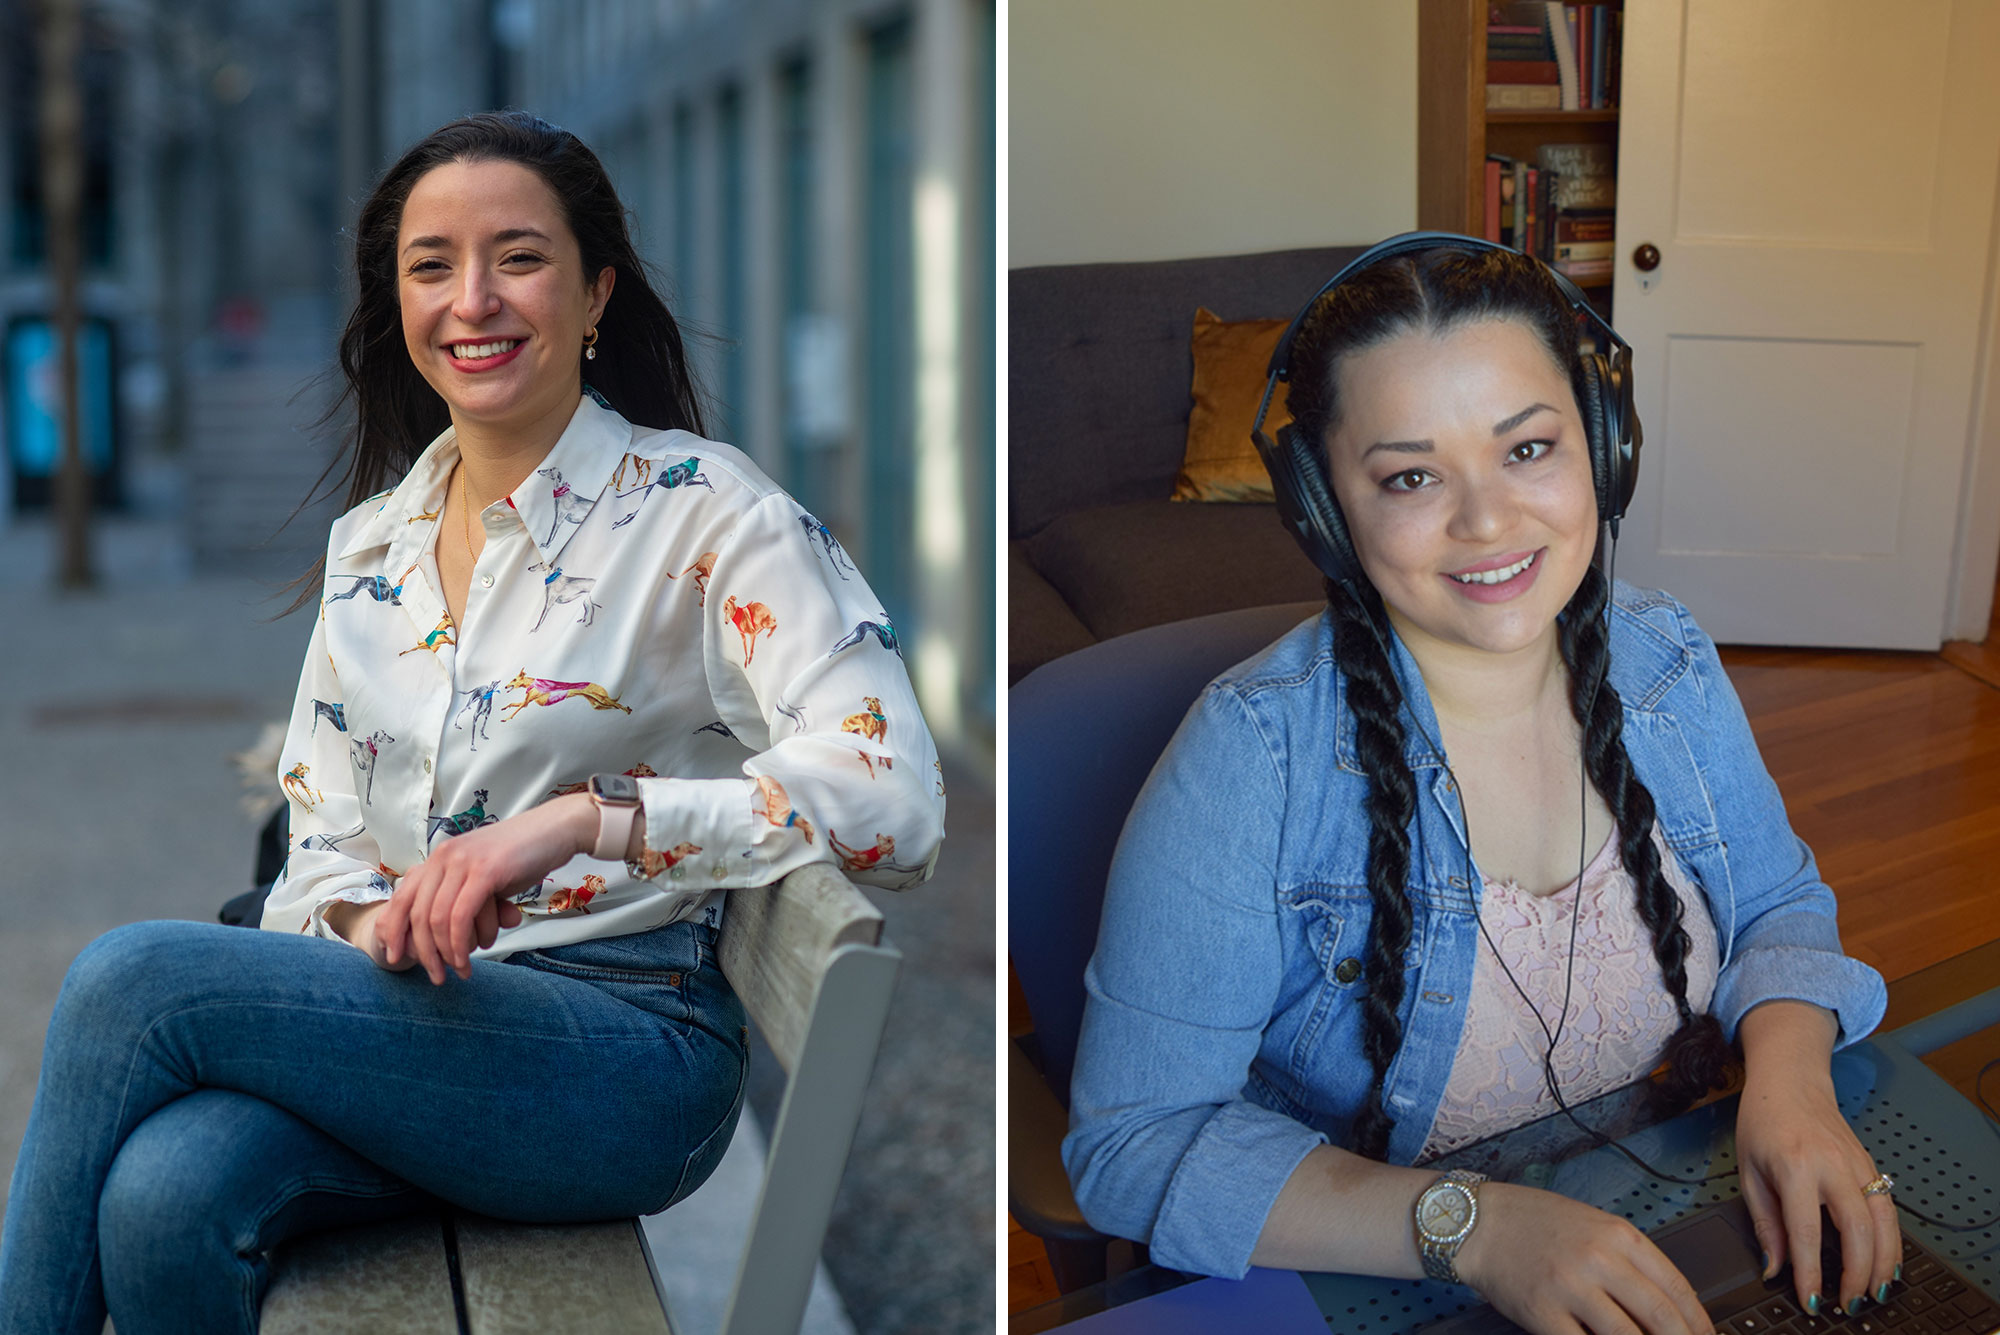 Composite image of Vitamin PhD podcast hosts. At left, Khadija El Karfi, sits on a bench in jeans and a pattern blouse. At right, Kiloni Quiles-Franco, wears headphone and appears to be working on her computer inside her home.